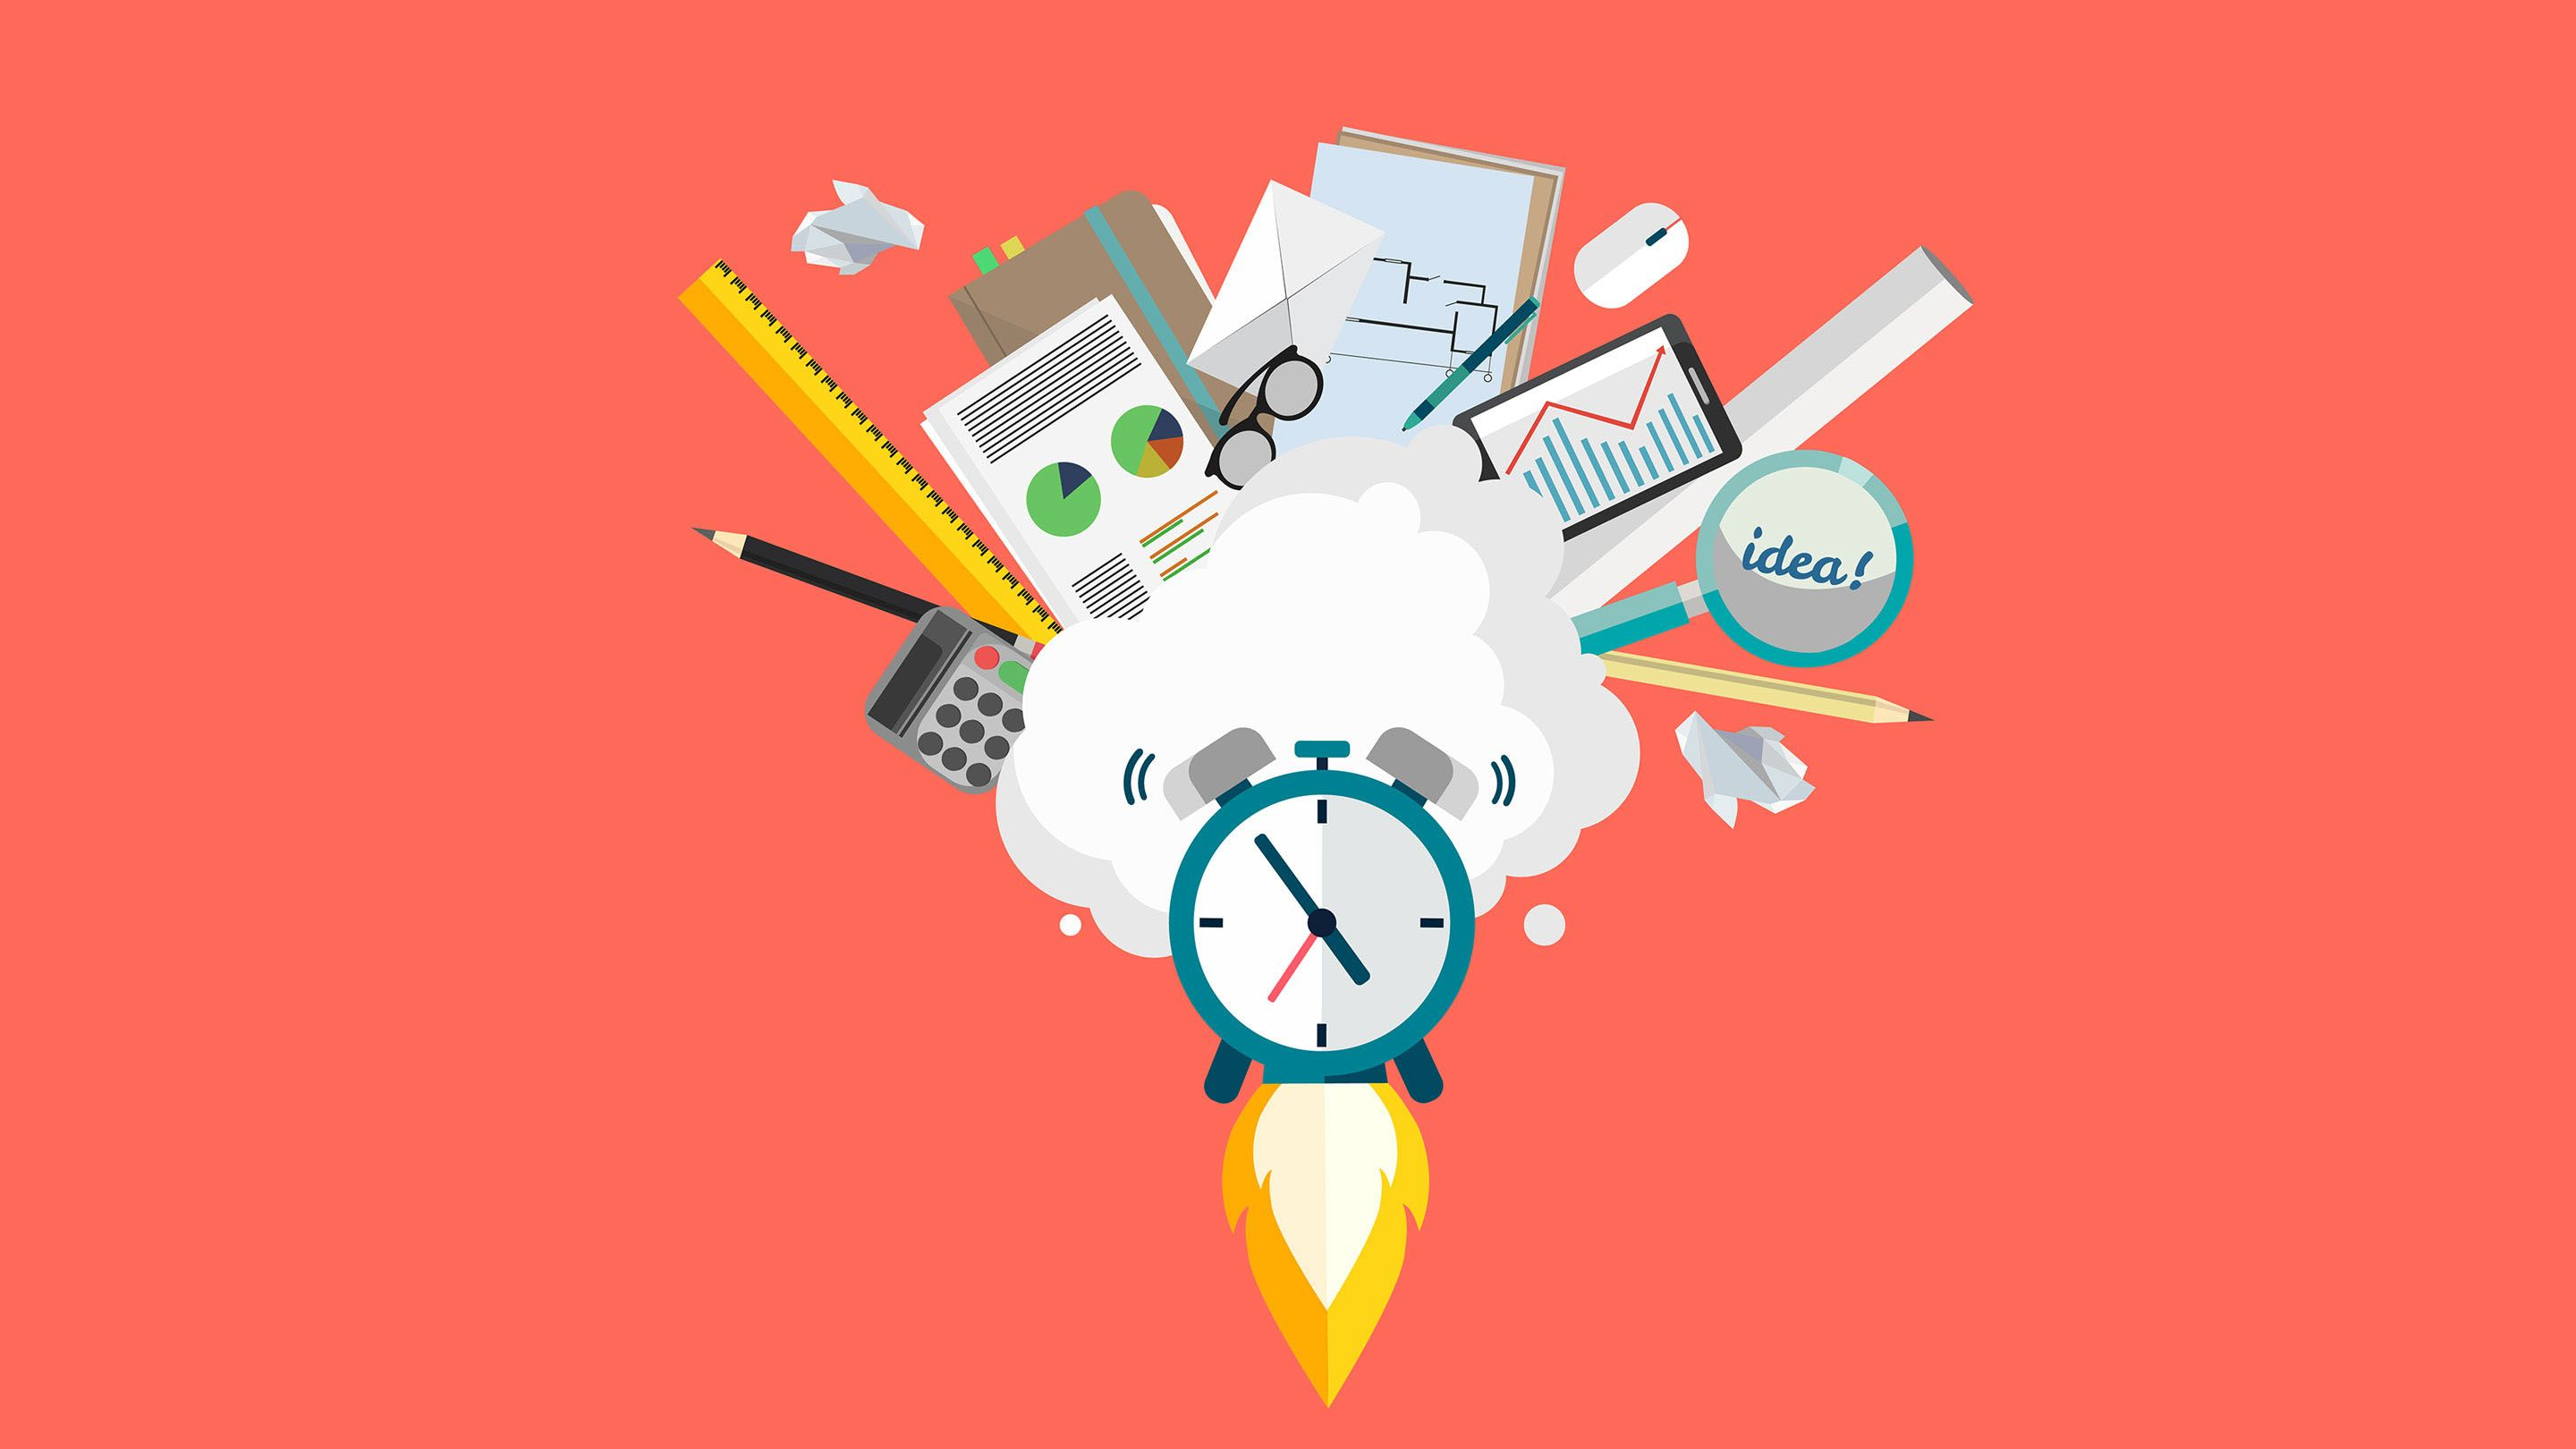 Illustration of a clock taking off like a rocket, with pens, paper, a tablet computer, and other items in a cloud above it